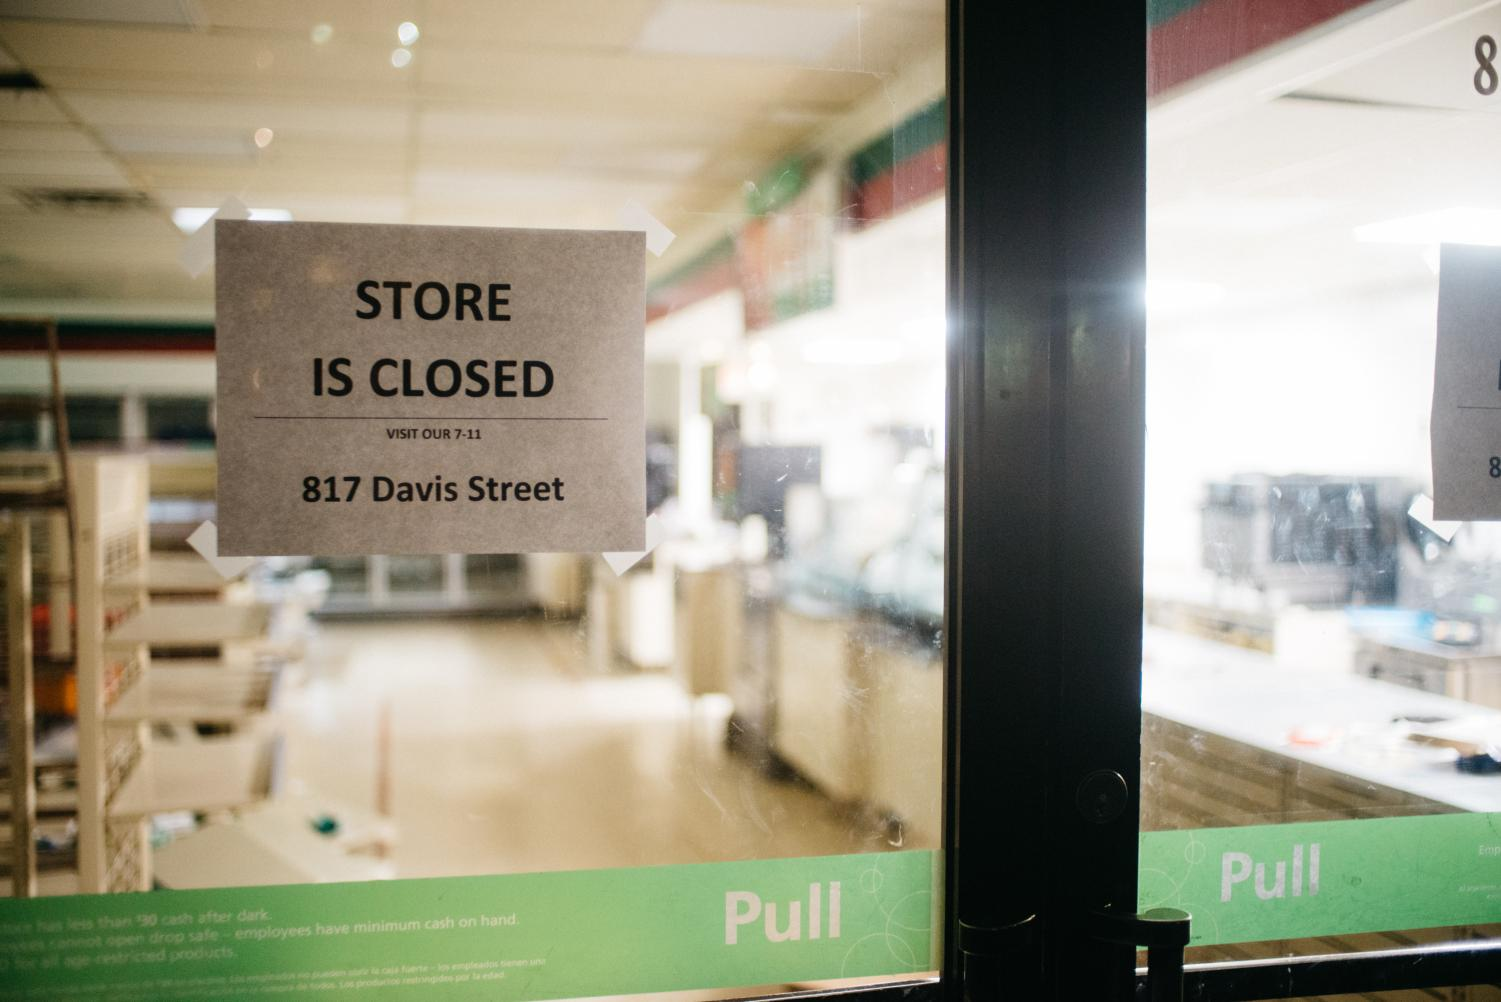 7-Eleven, 817 Emerson St. The convenience store has temporarily closed in preparation for construction of a nine-story, 242-unit residential building, which will include space for 7-Eleven to reopen on the ground floor.